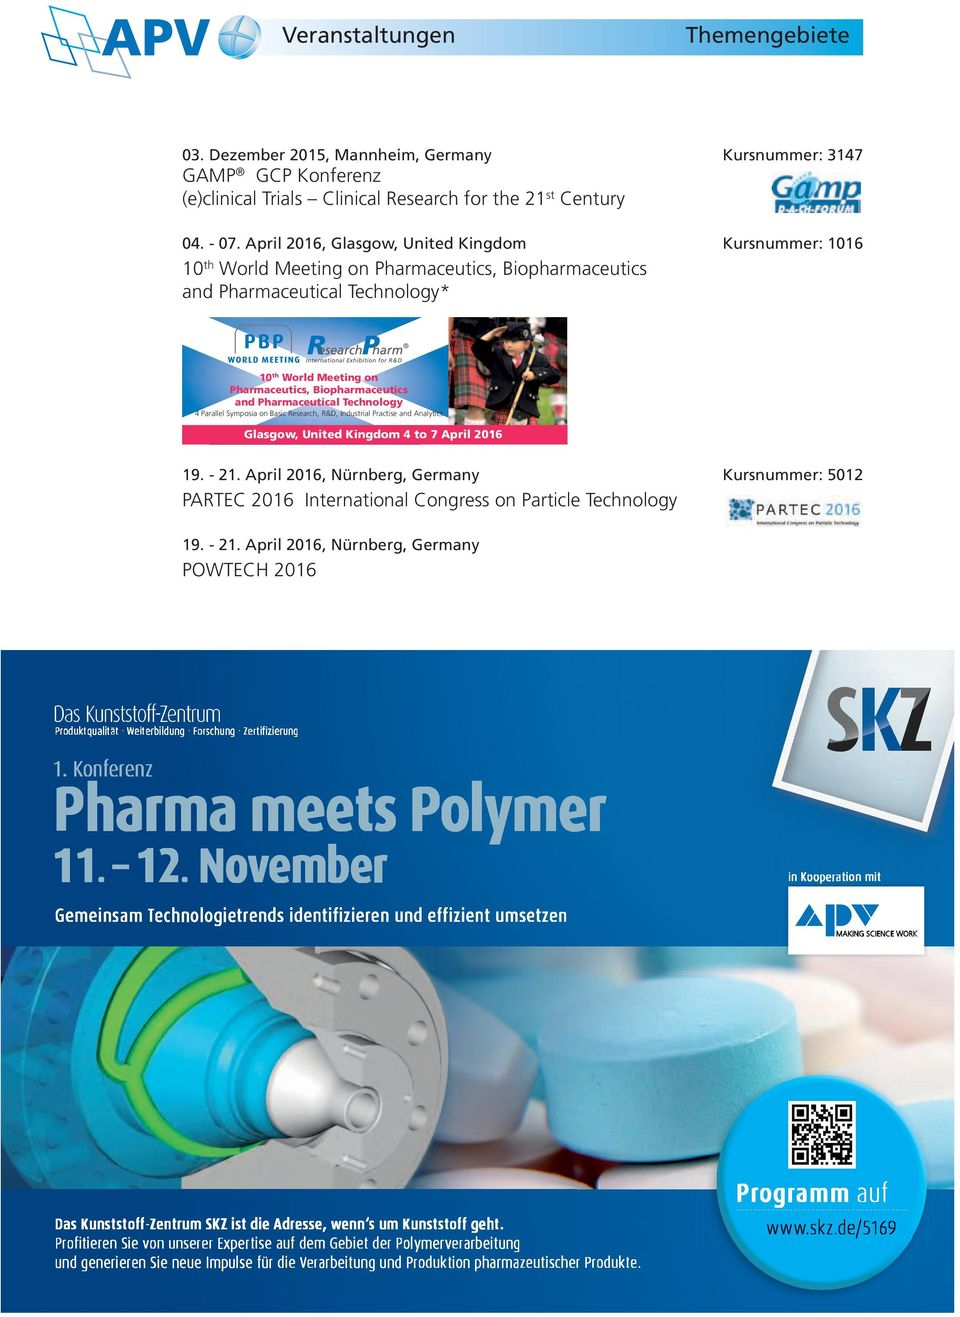 April 2016, Glasgow, United Kingdom Kursnummer: 1016 th 10 World Meeting on Pharmaceutics, Biopharmaceutics and Pharmaceutical Technology* 10th World Meeting on Pharmaceutics, Biopharmaceutics and